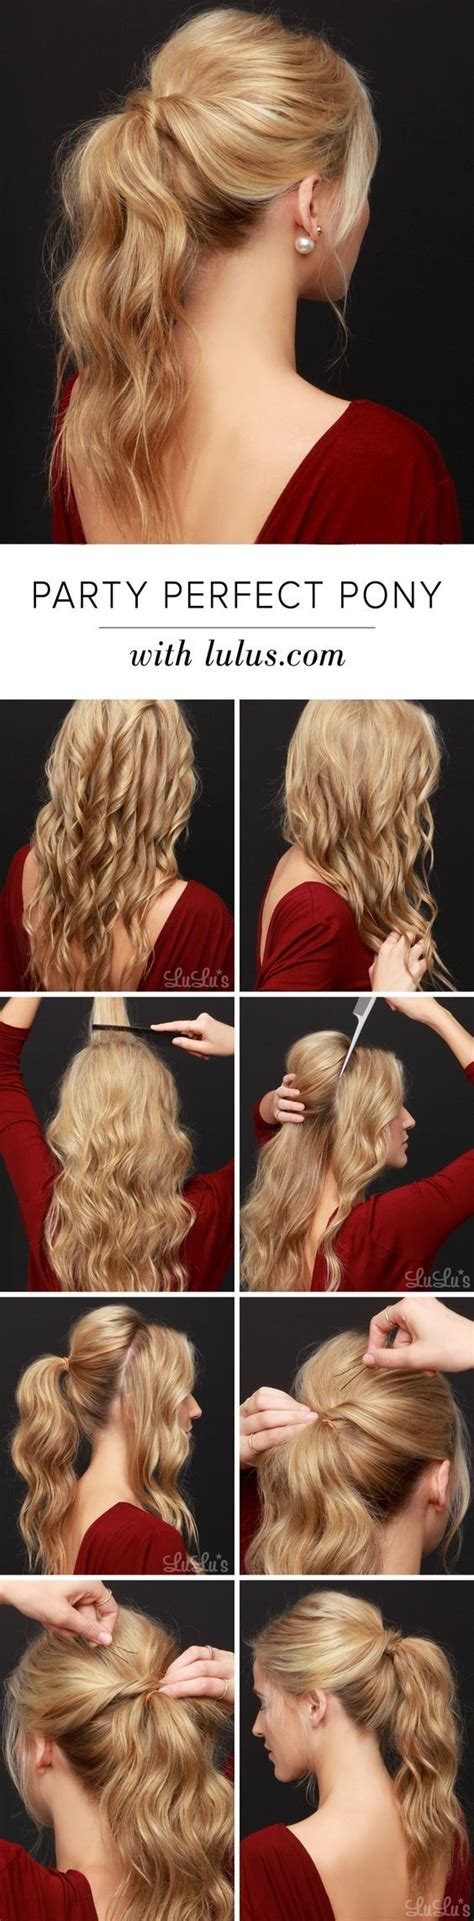 ponytail easy hairstyles hair perfect long tutorial hairstyle blonde step pony party tail tutorials pretty curly backless lulus dress curled